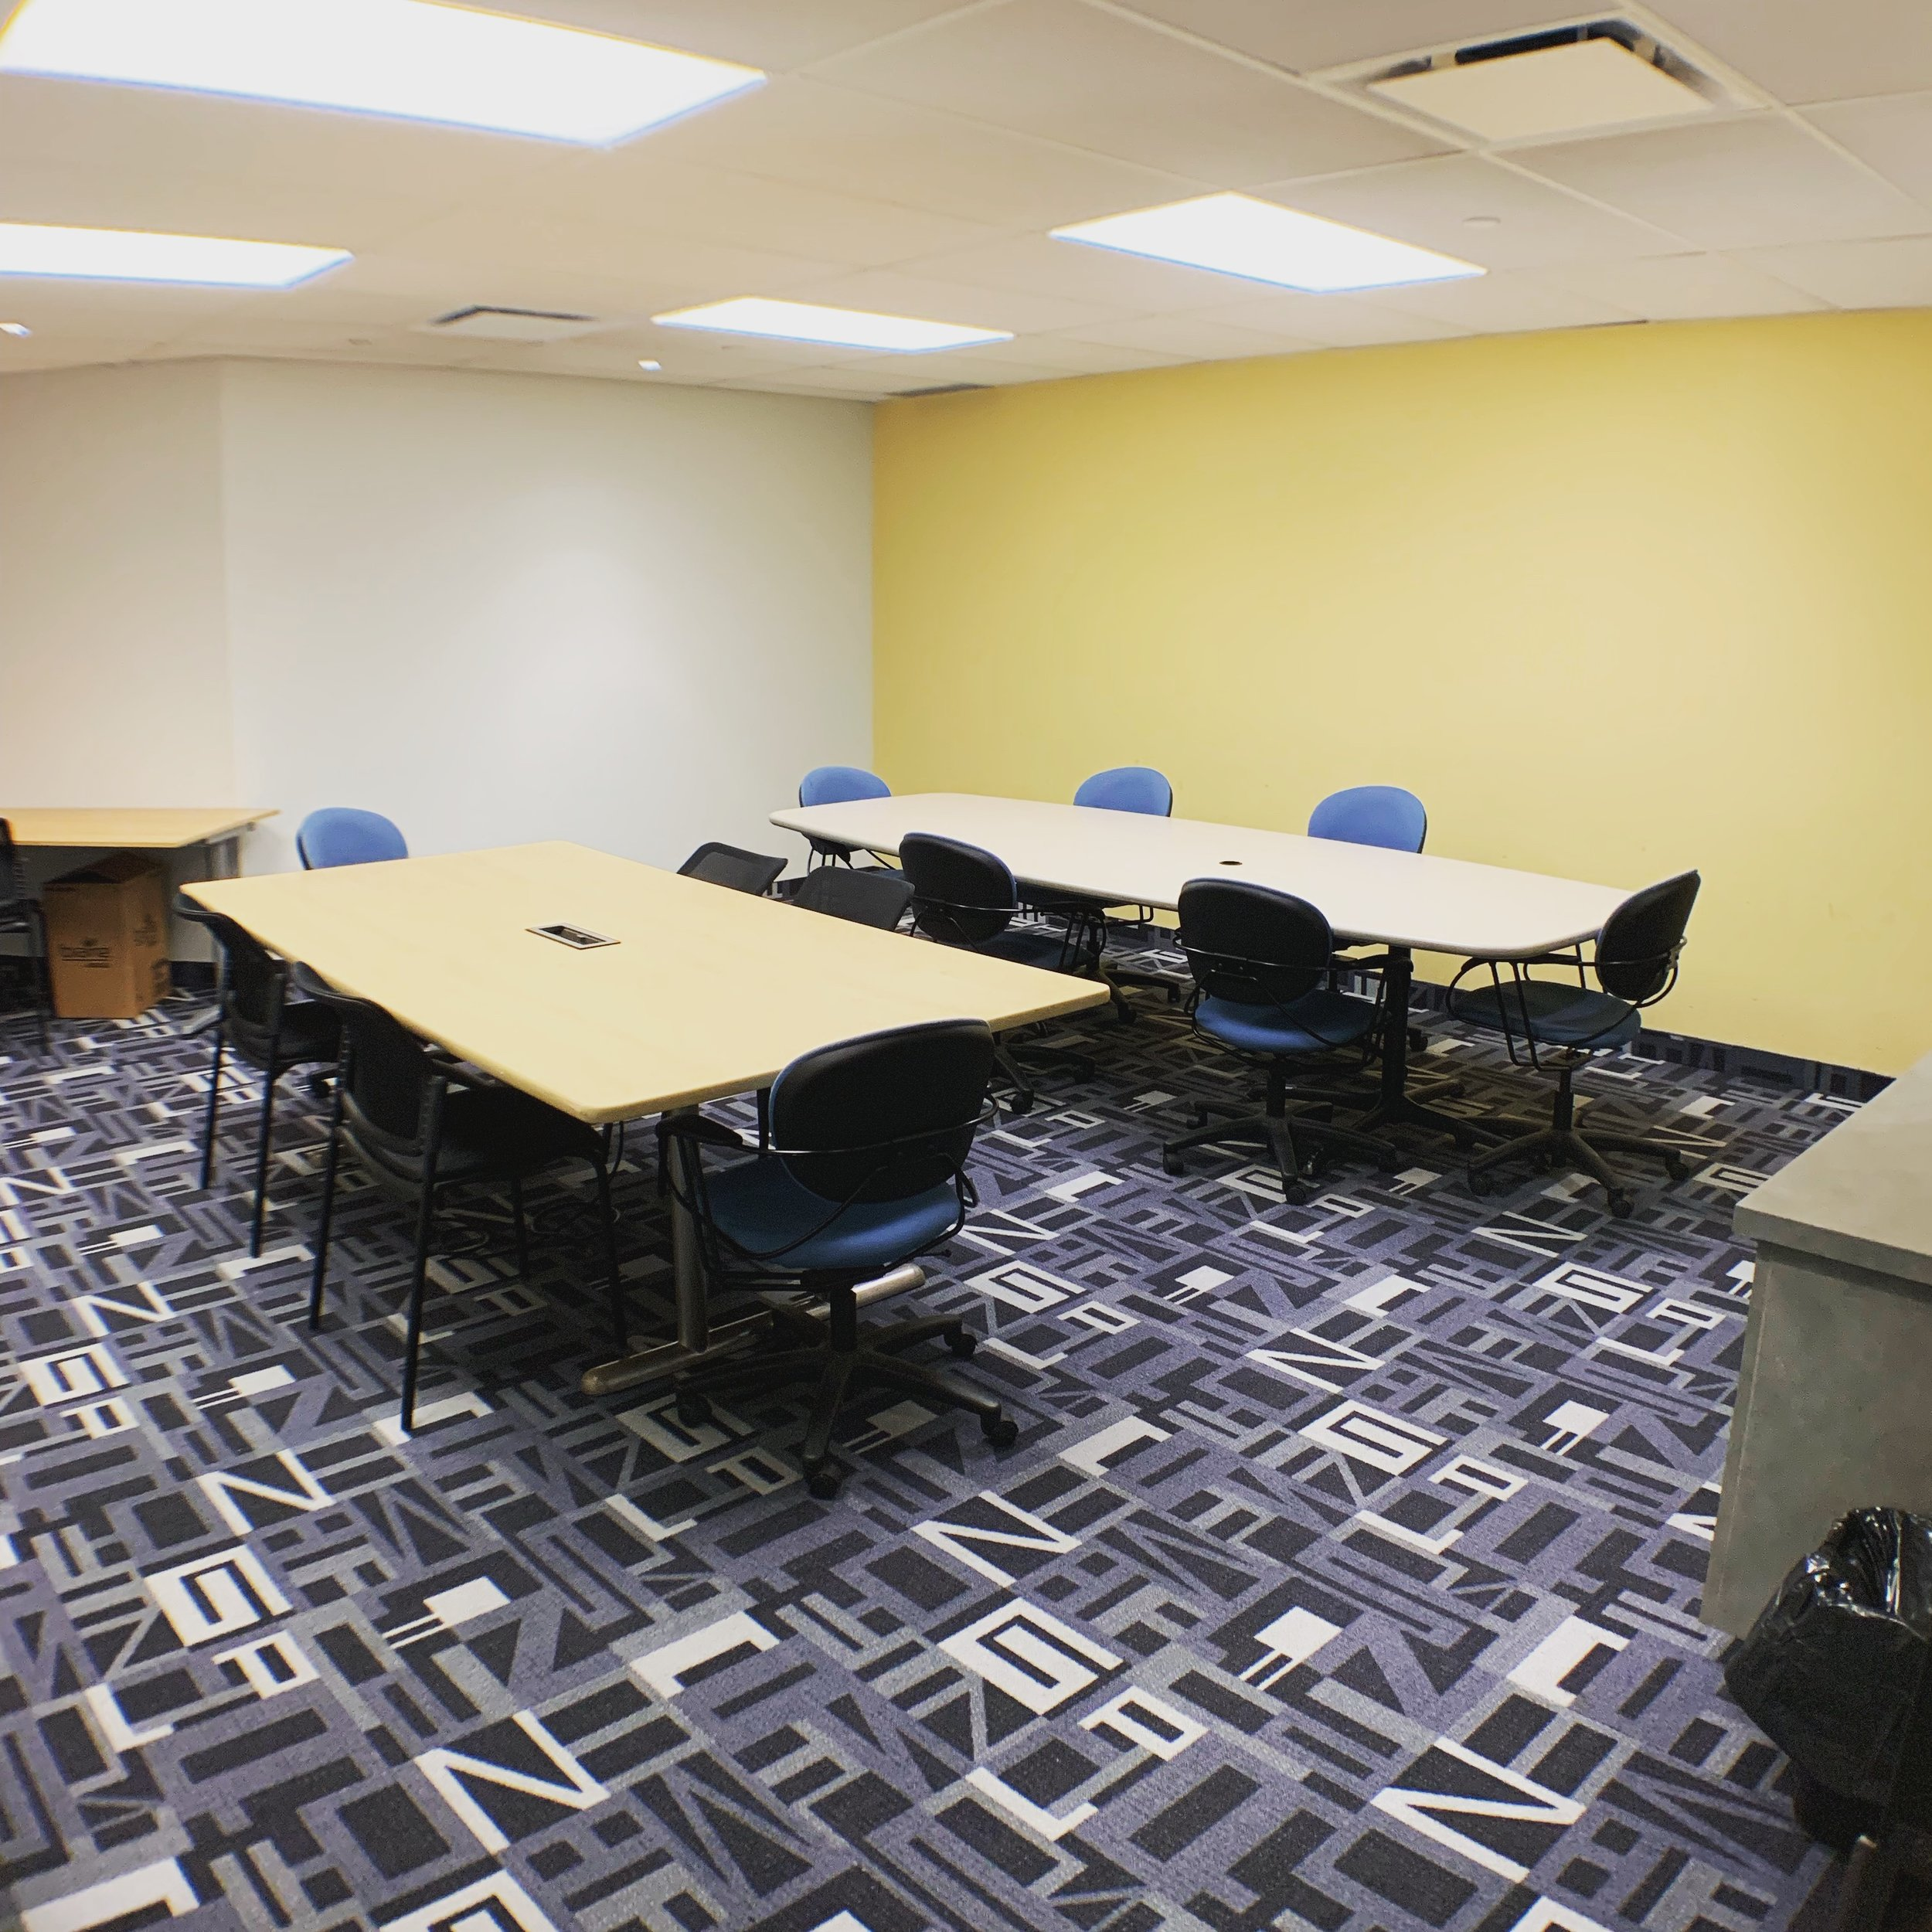 Workshop Room - Looking for a place to hold your workshops? Our workshop room has seating for up to 12 people and has lots of additional space for supplies to ensure that your classes run smoothly.